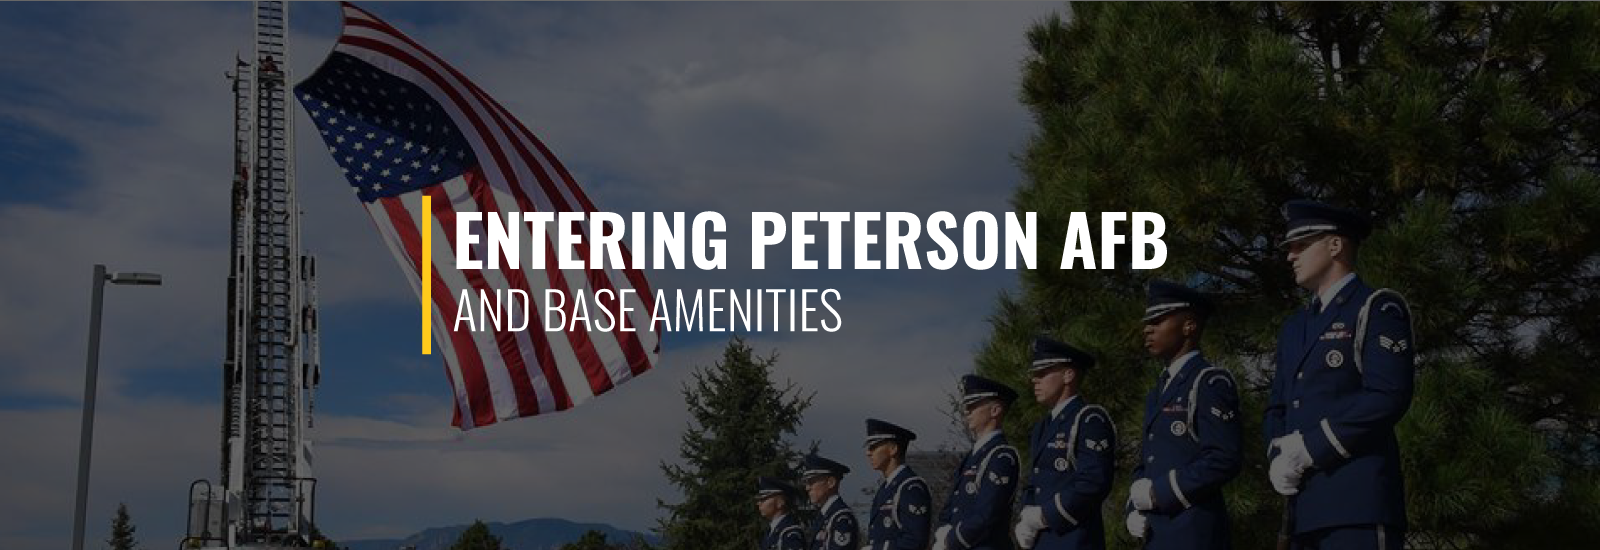 Entering Peterson AFB and Base Amenities